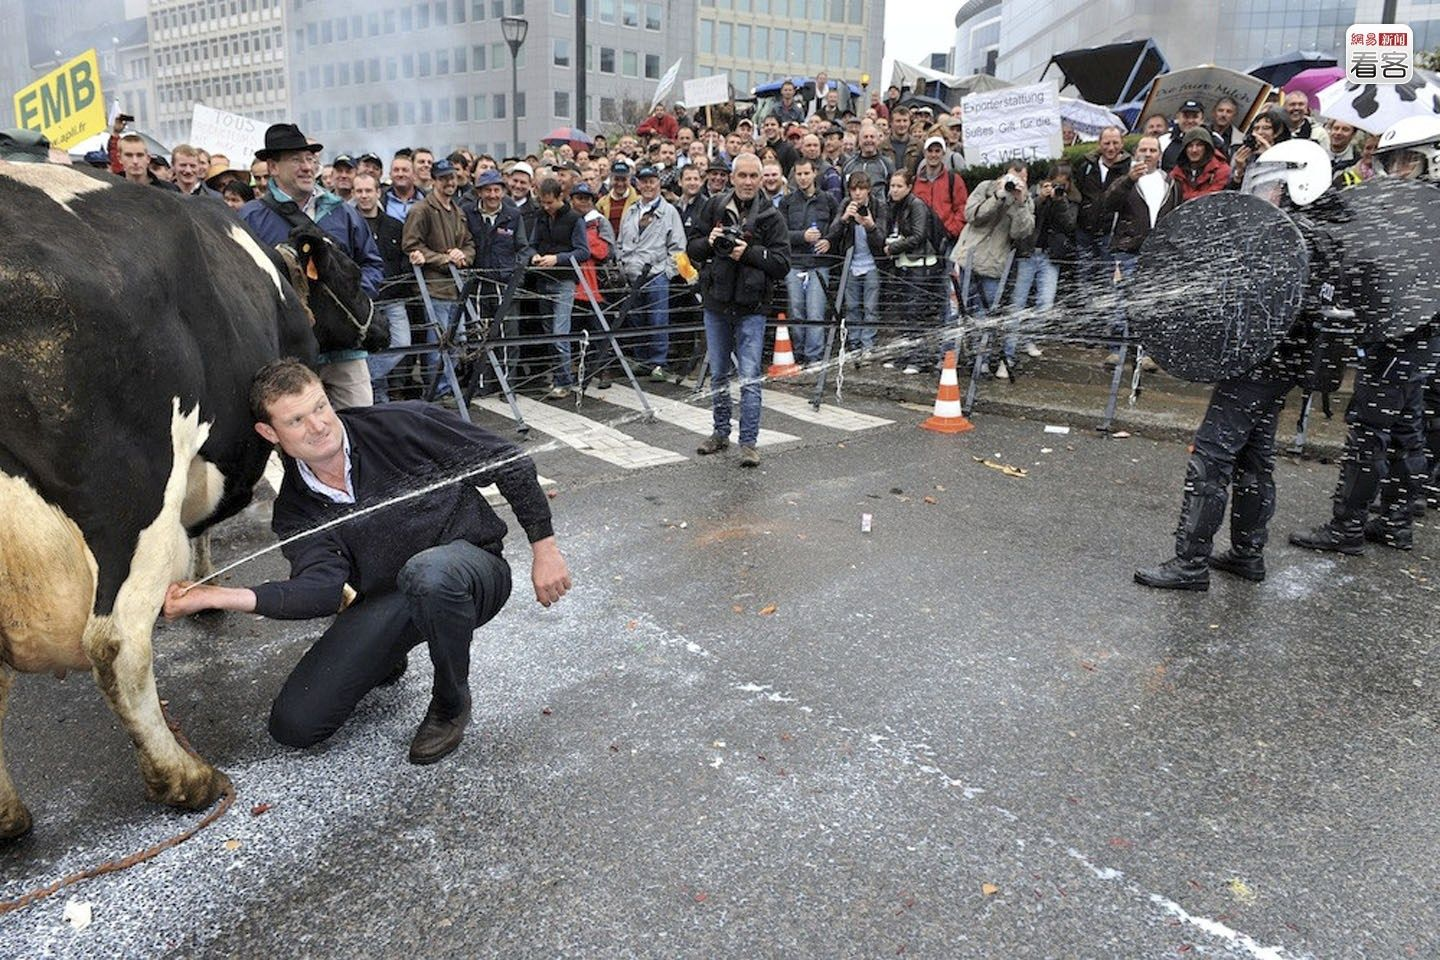 10 Protests That Were Total Failures